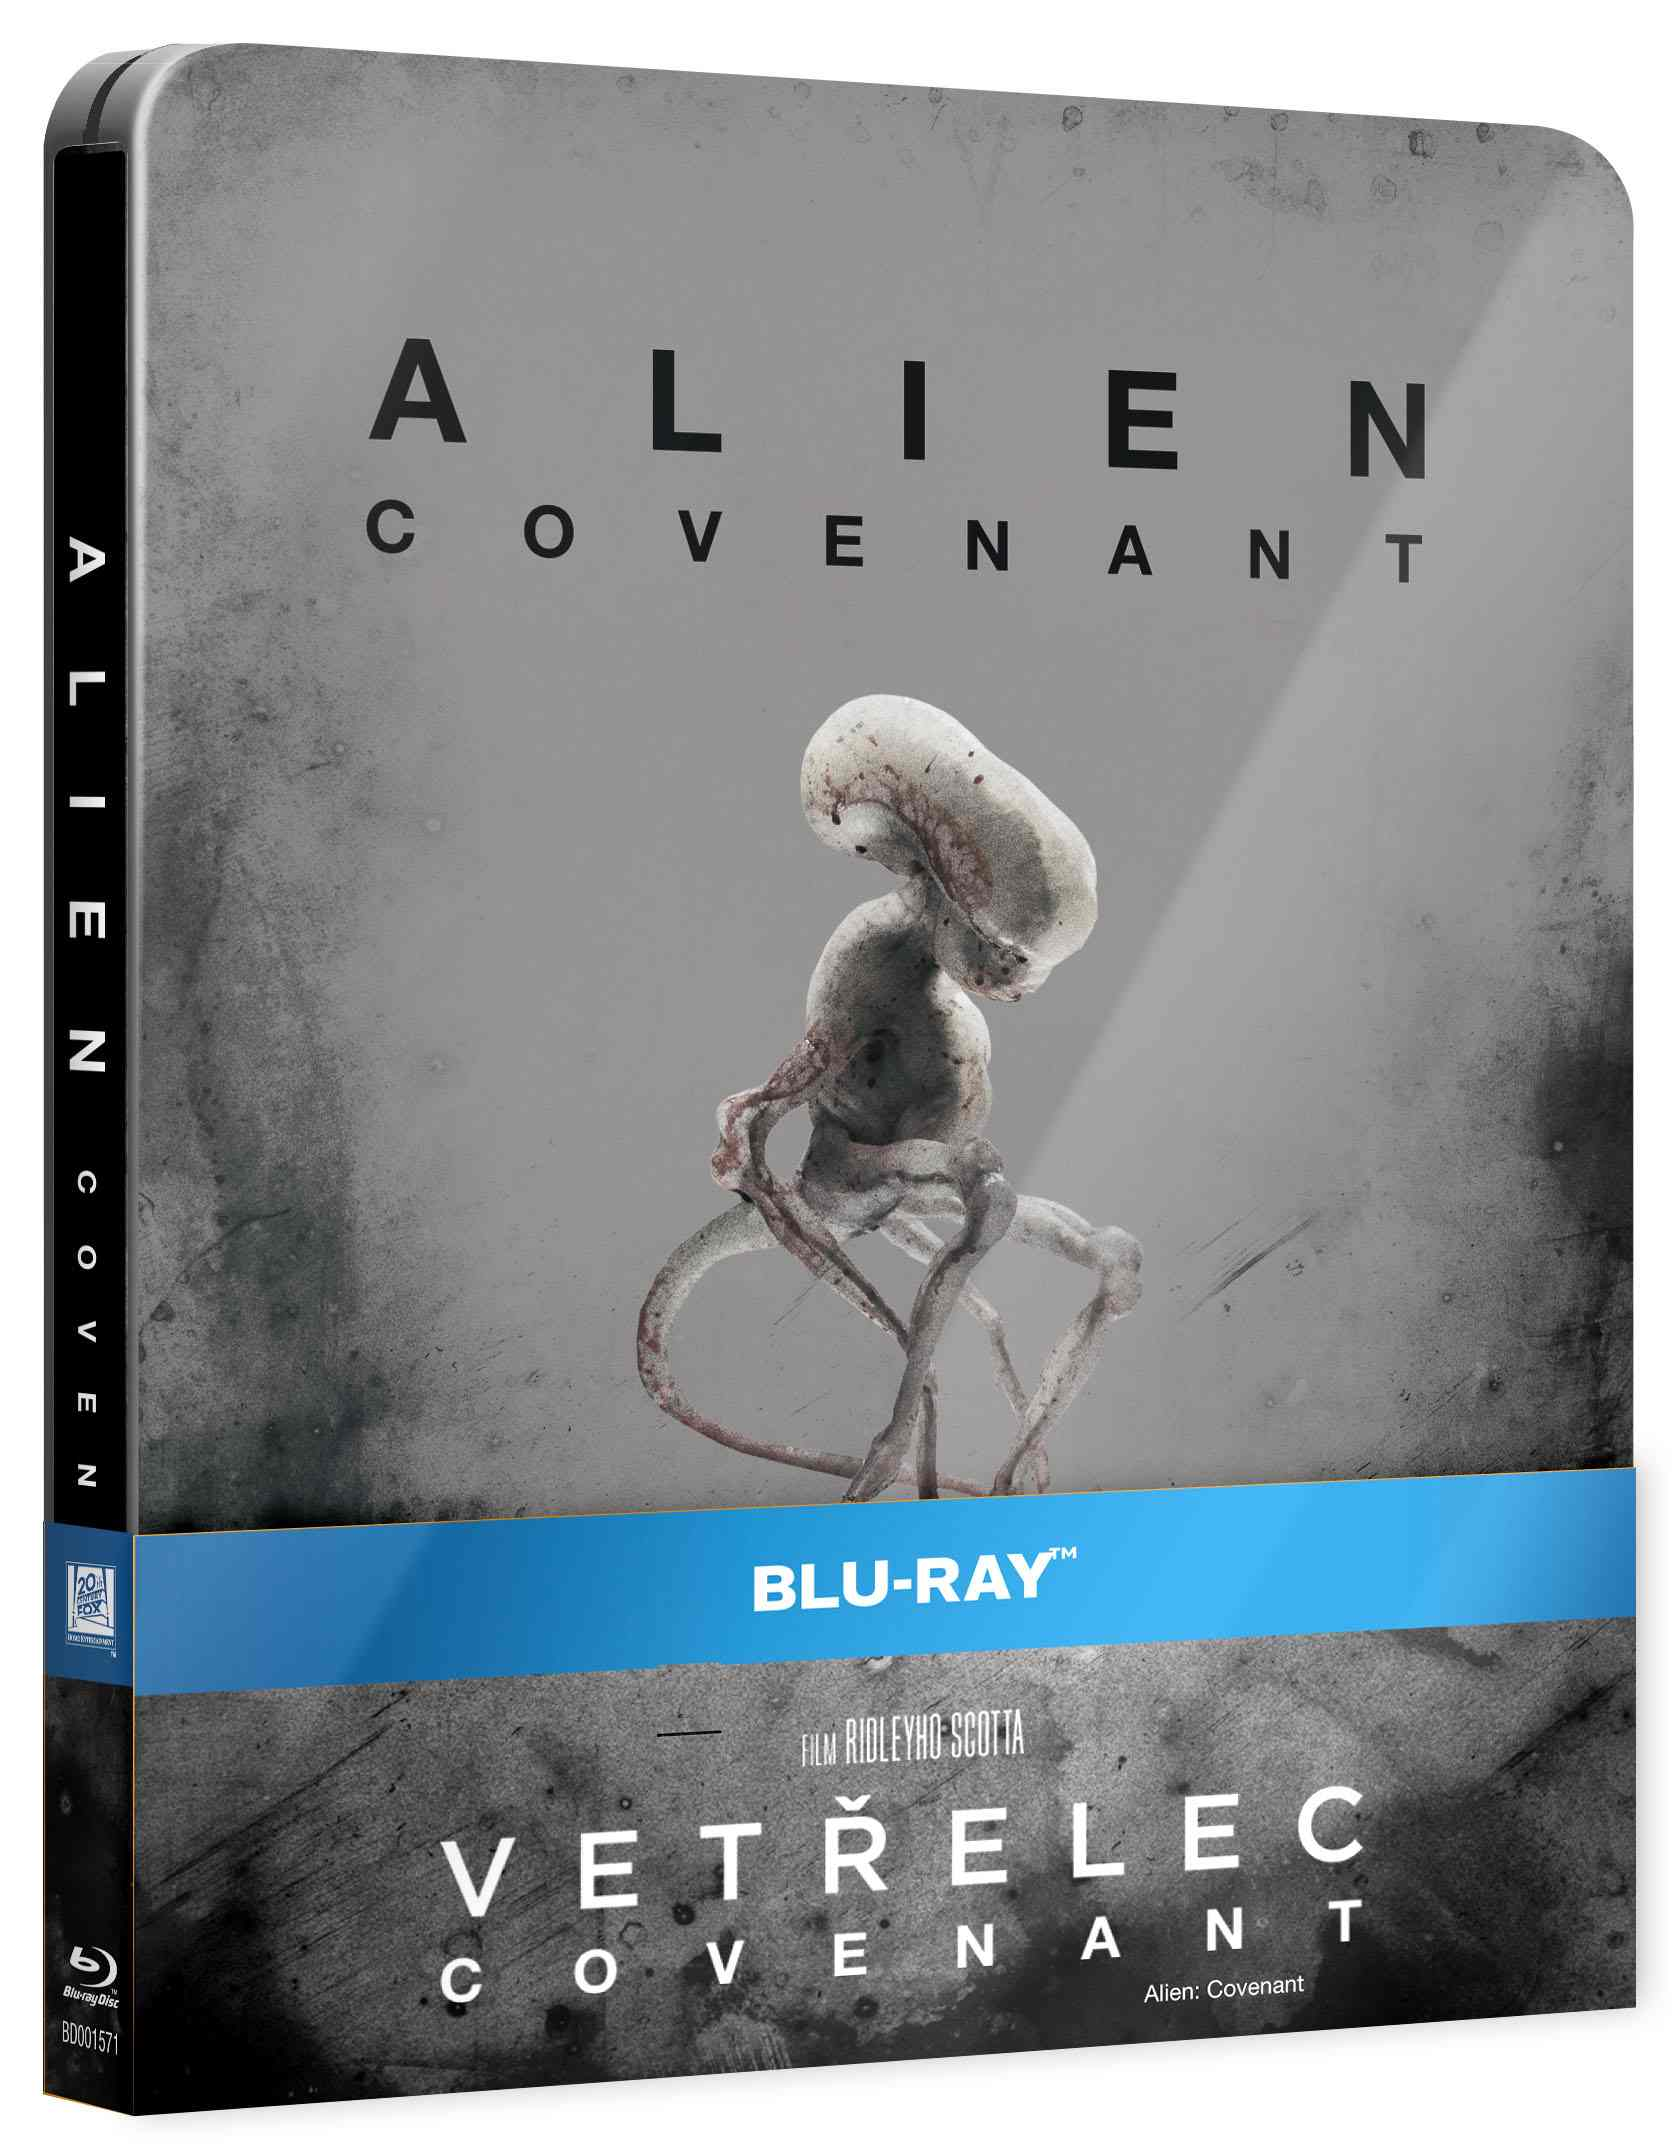 VETŘELEC: COVENANT - Blu-ray STEELBOOK